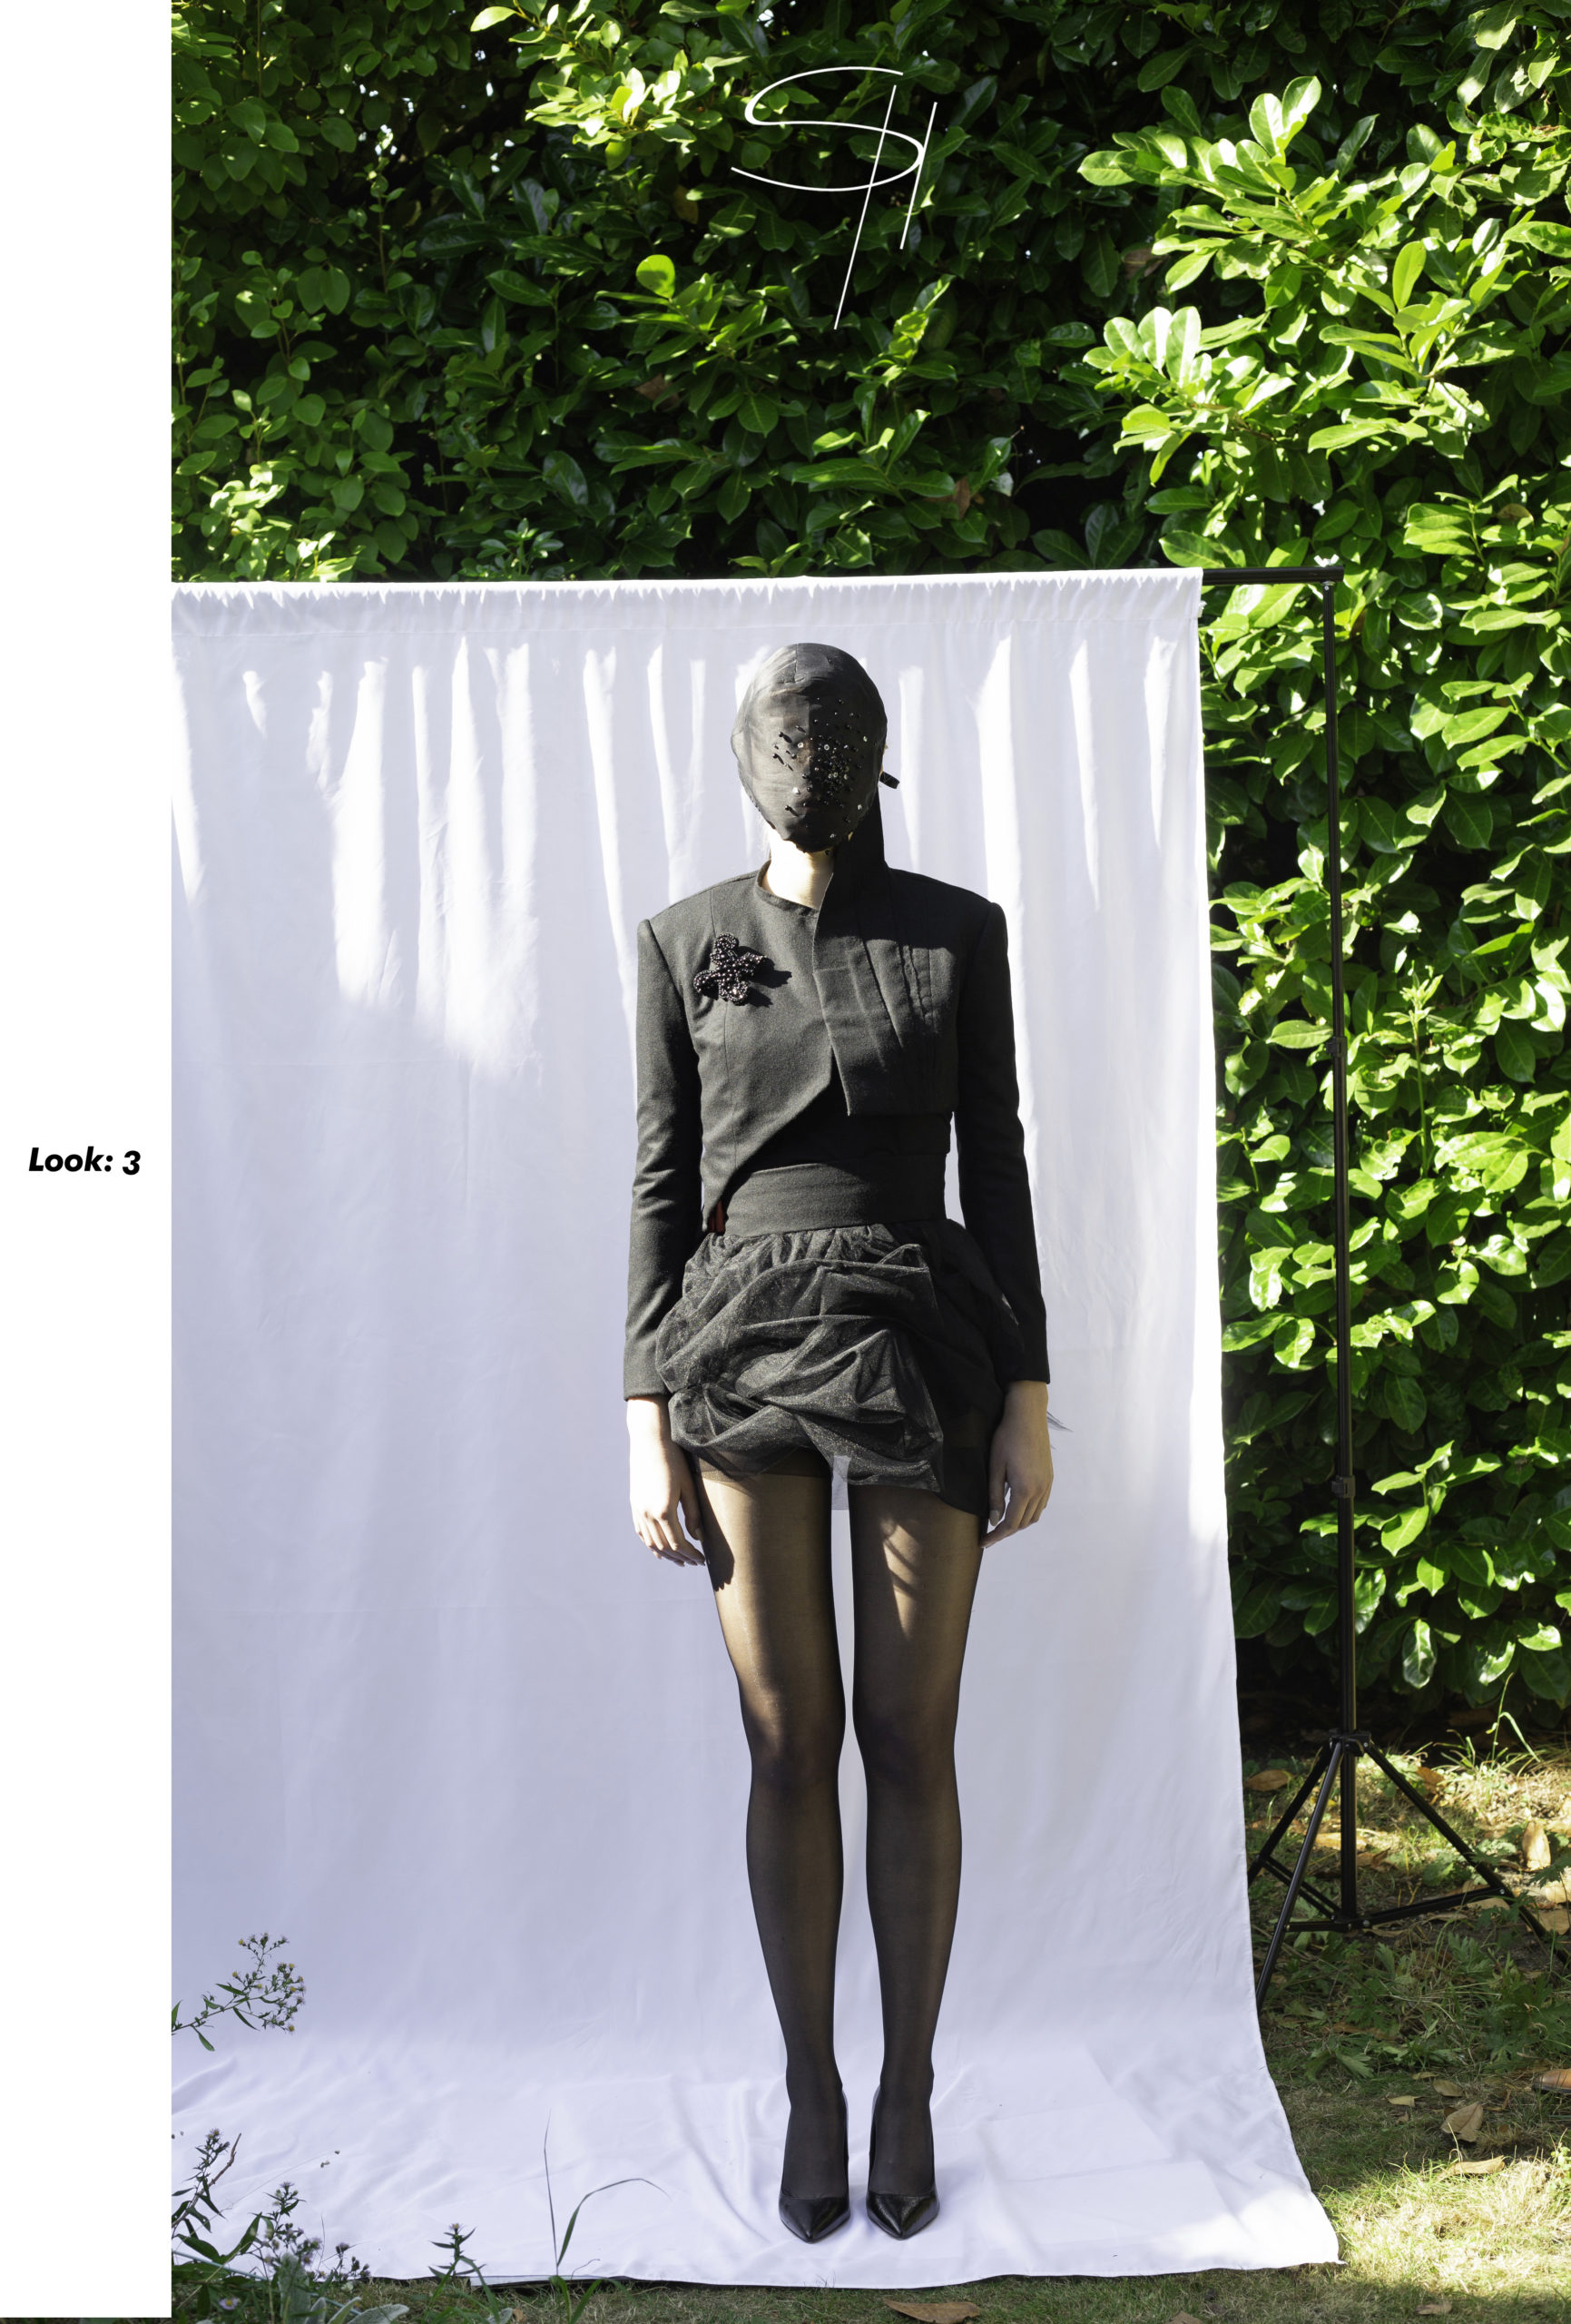 3_-look-scaled